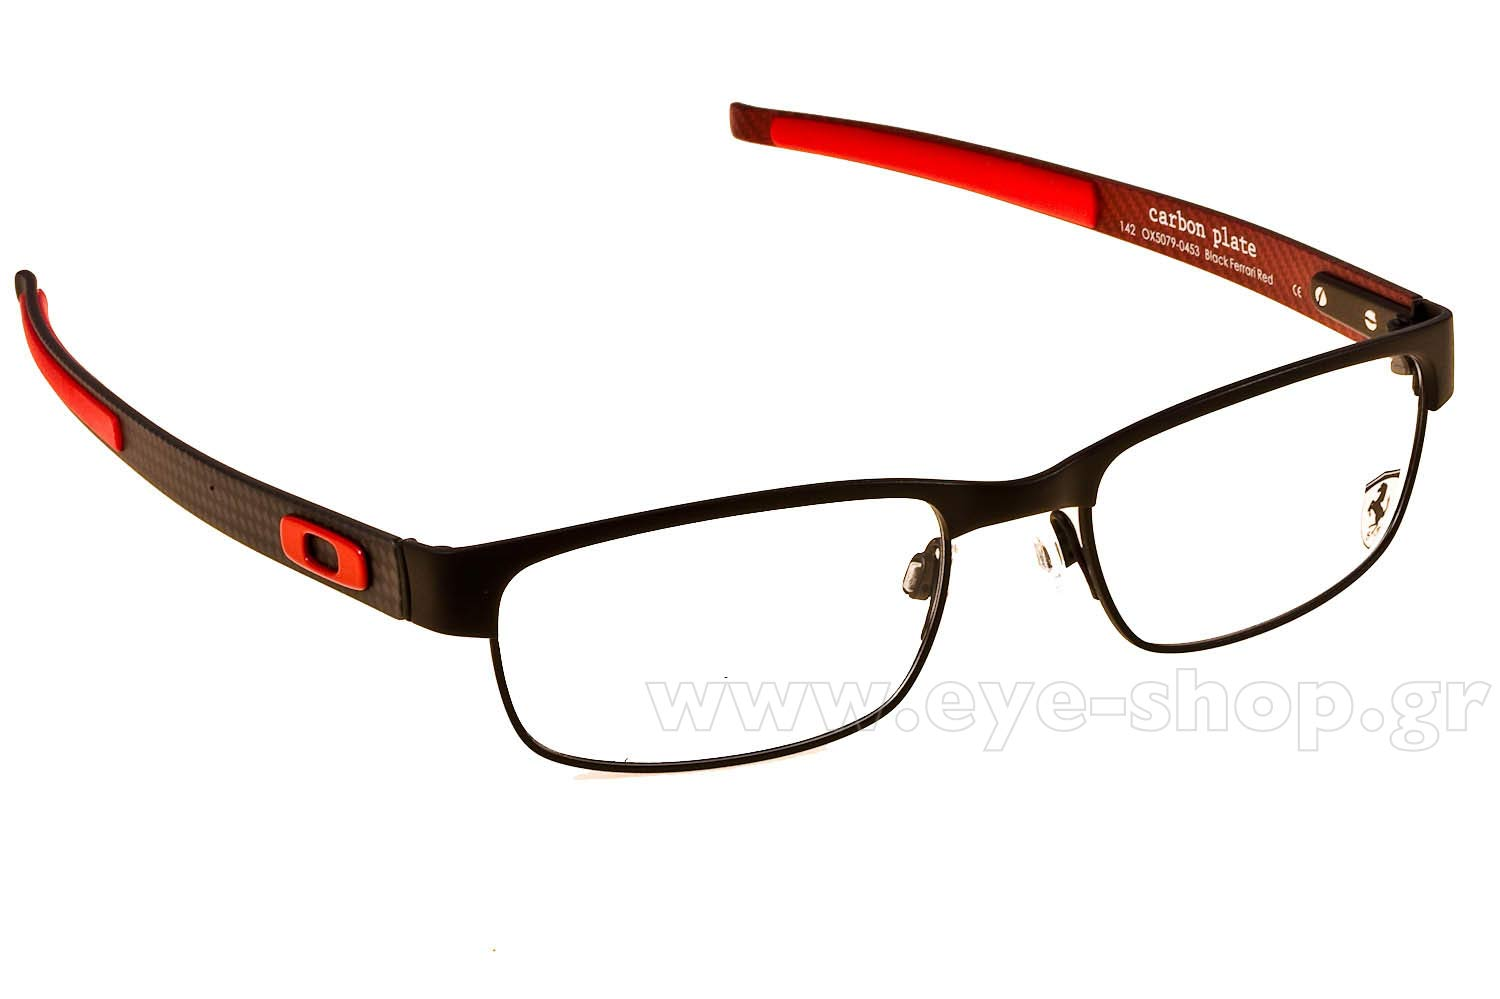 f71c7e08745 Enlarge Colors OutOfStock · Glasses Oakley Carbon Plate 5079 5079 04  Scuderia Ferrari Collection